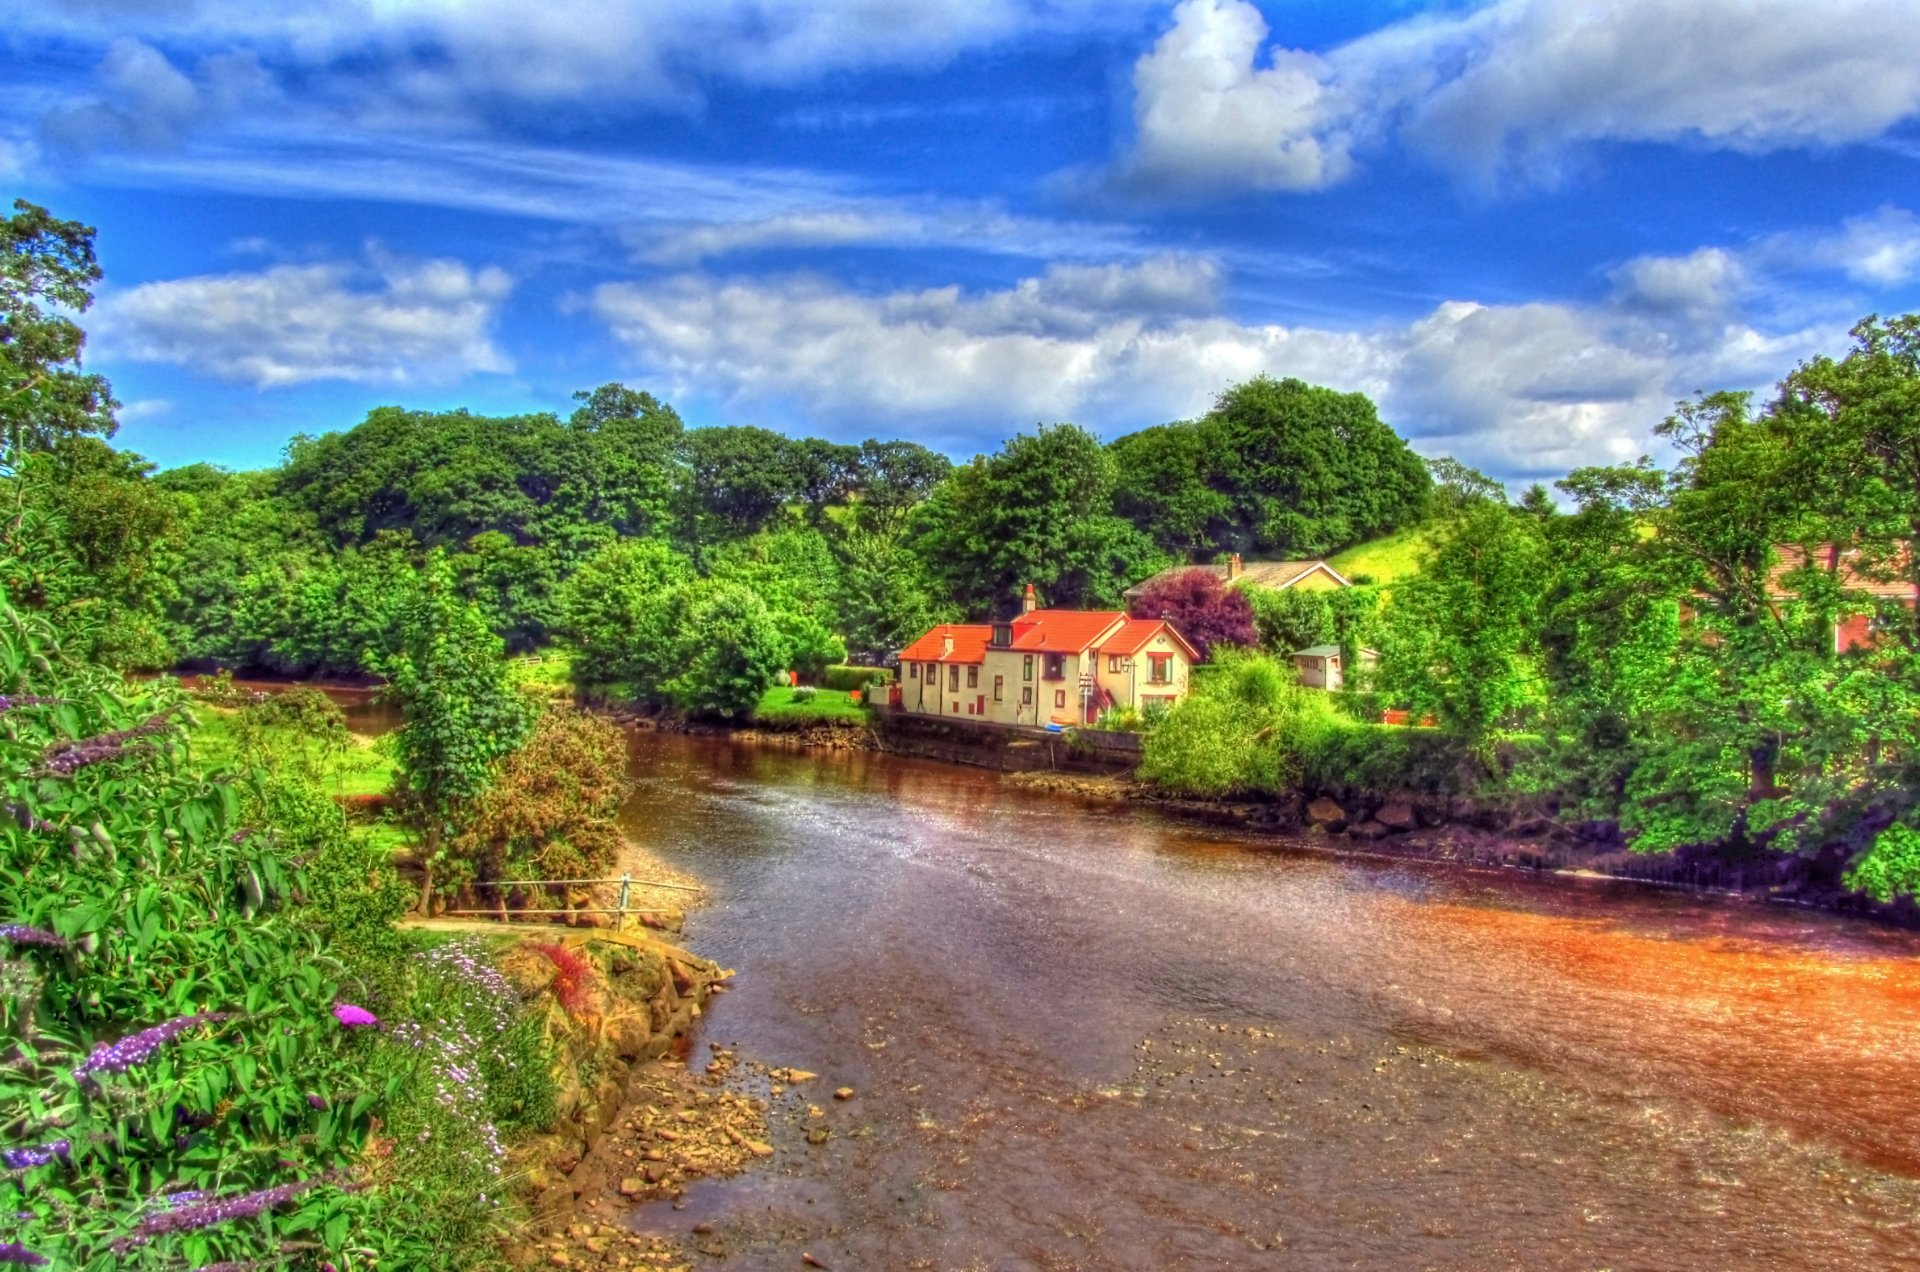 Photography - HDR  Scenery Landscape River House Tree Sky Blue Green Cloud Wallpaper